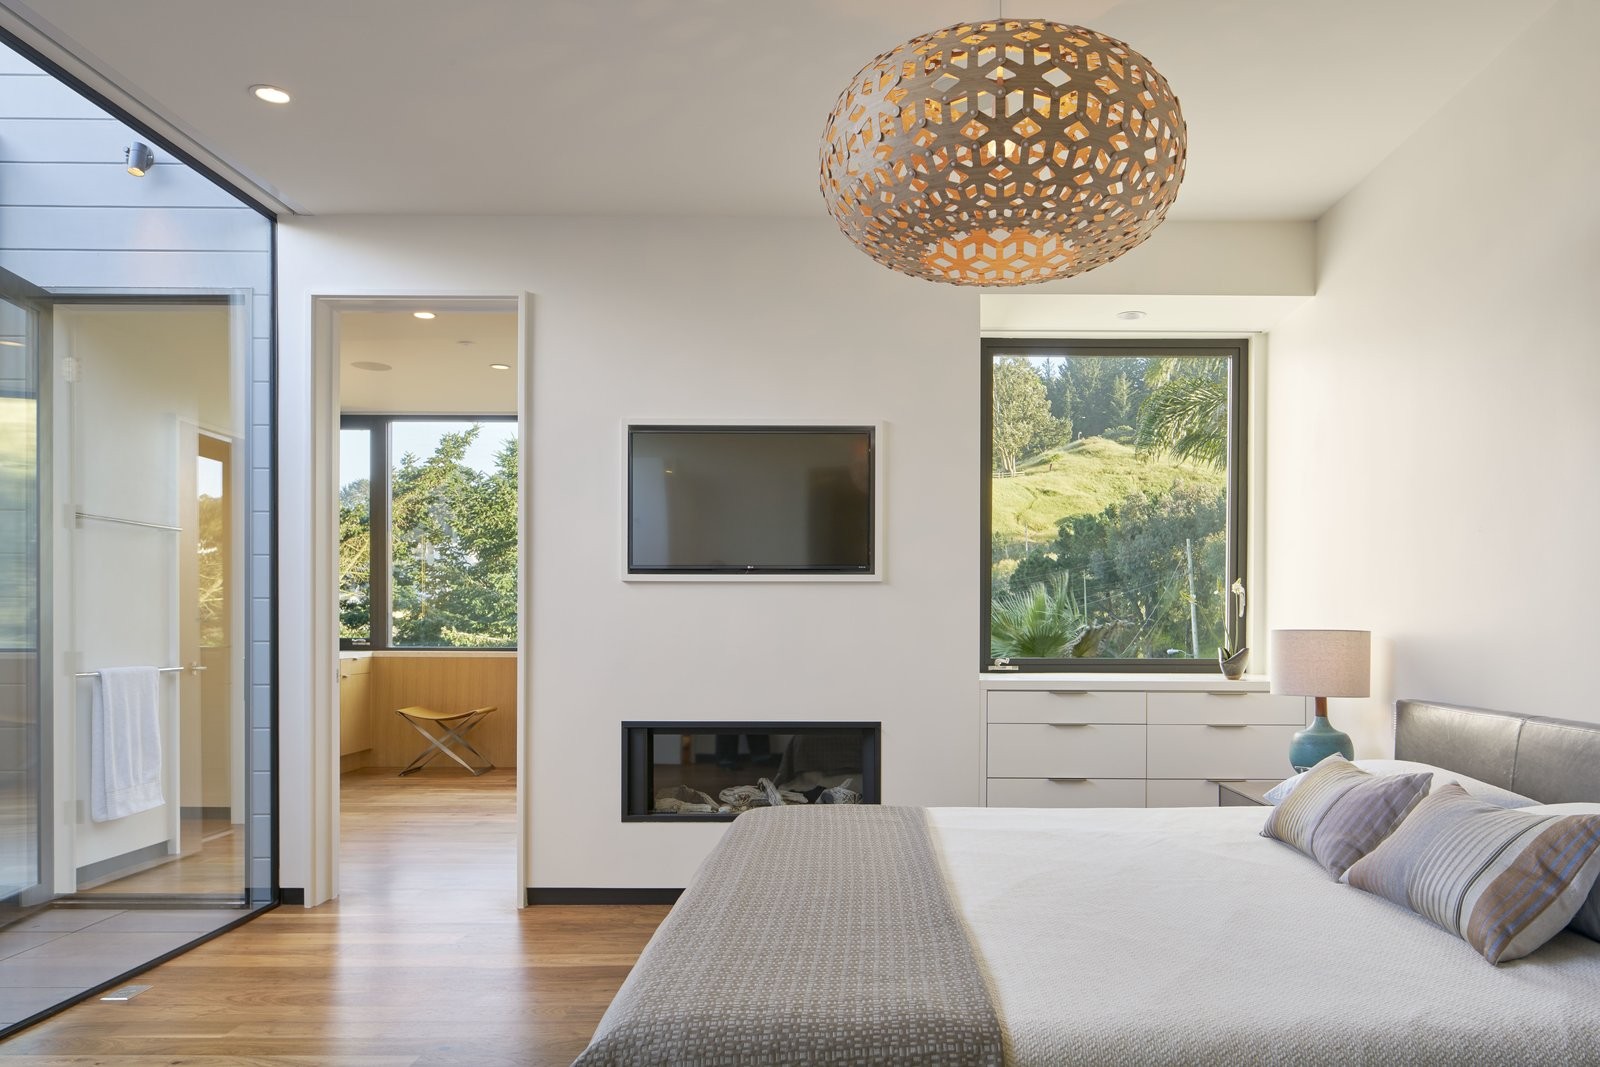 Bedroom  29th Street Residence by Schwartz and Architecture